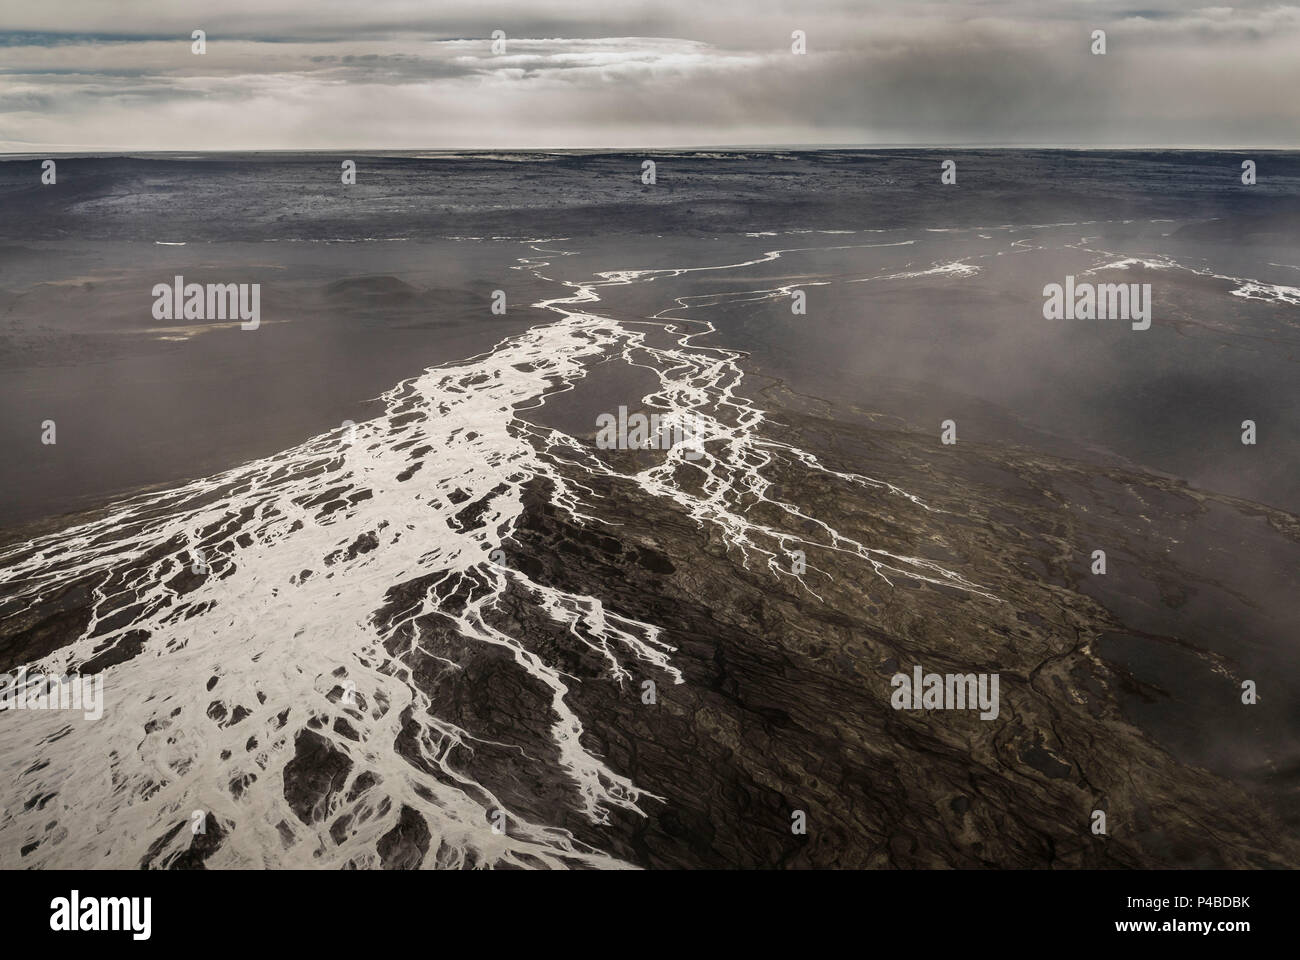 Dust storms over lava fields by Holuhraun. August 29, 2014 a fissure eruption started in Holuhraun at the northern end of a magma intrusion, which had moved progressively north, from the Bardarbunga volcano. Bardarbunga is a stratovolcano located under Vatnajokull, Iceland's most extensive glacier. - Stock Image